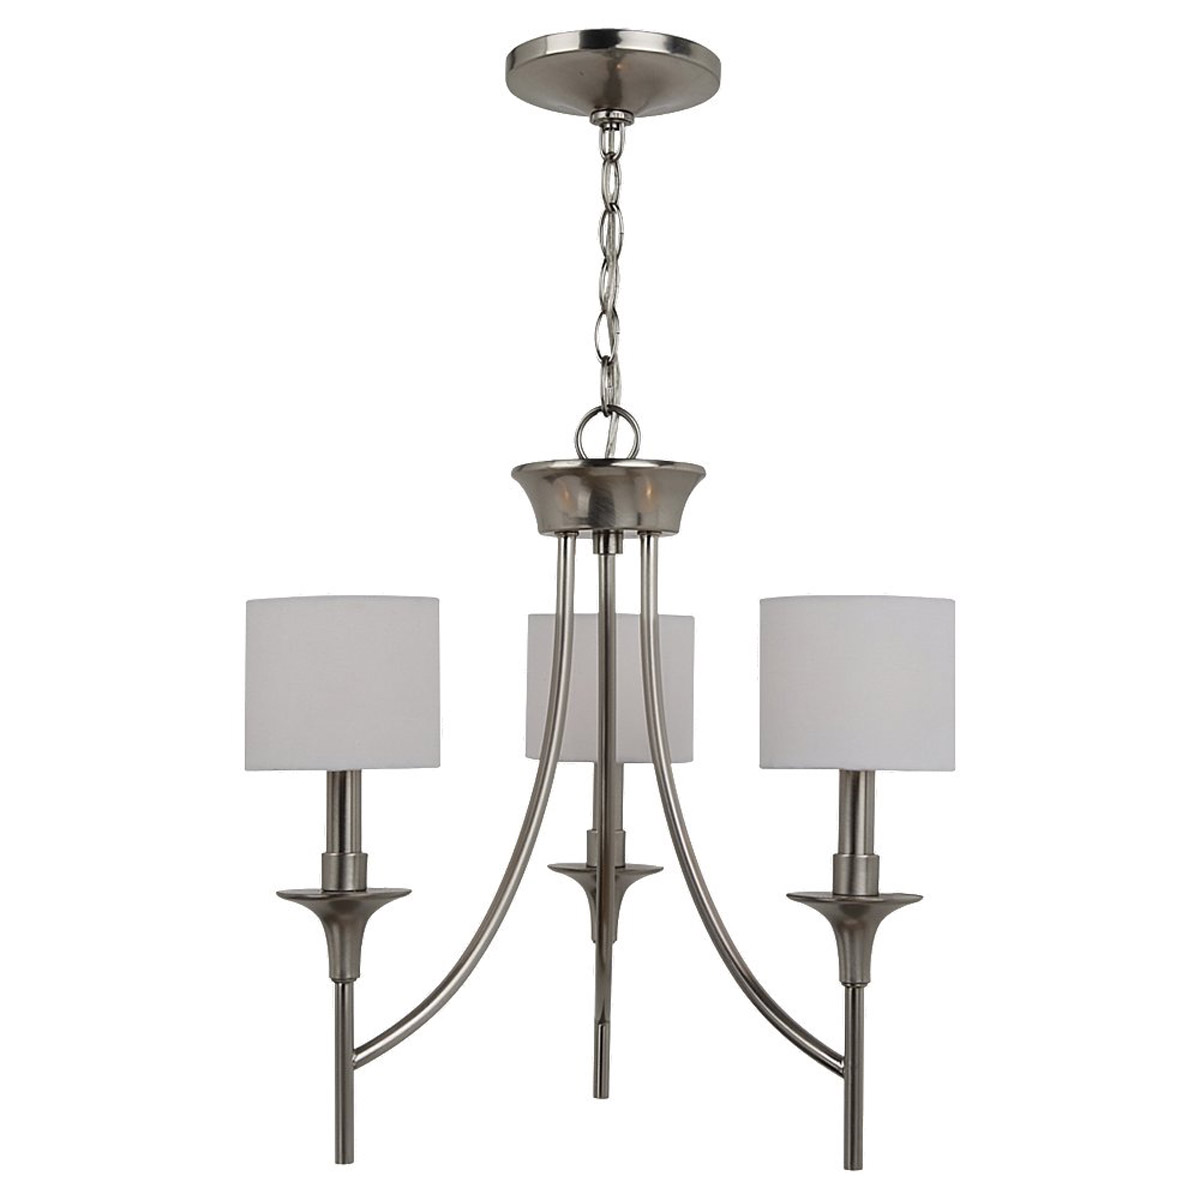 Sea Gull Lighting Stirling 3 Light Chandelier in Brushed Nickel 31932-962 photo